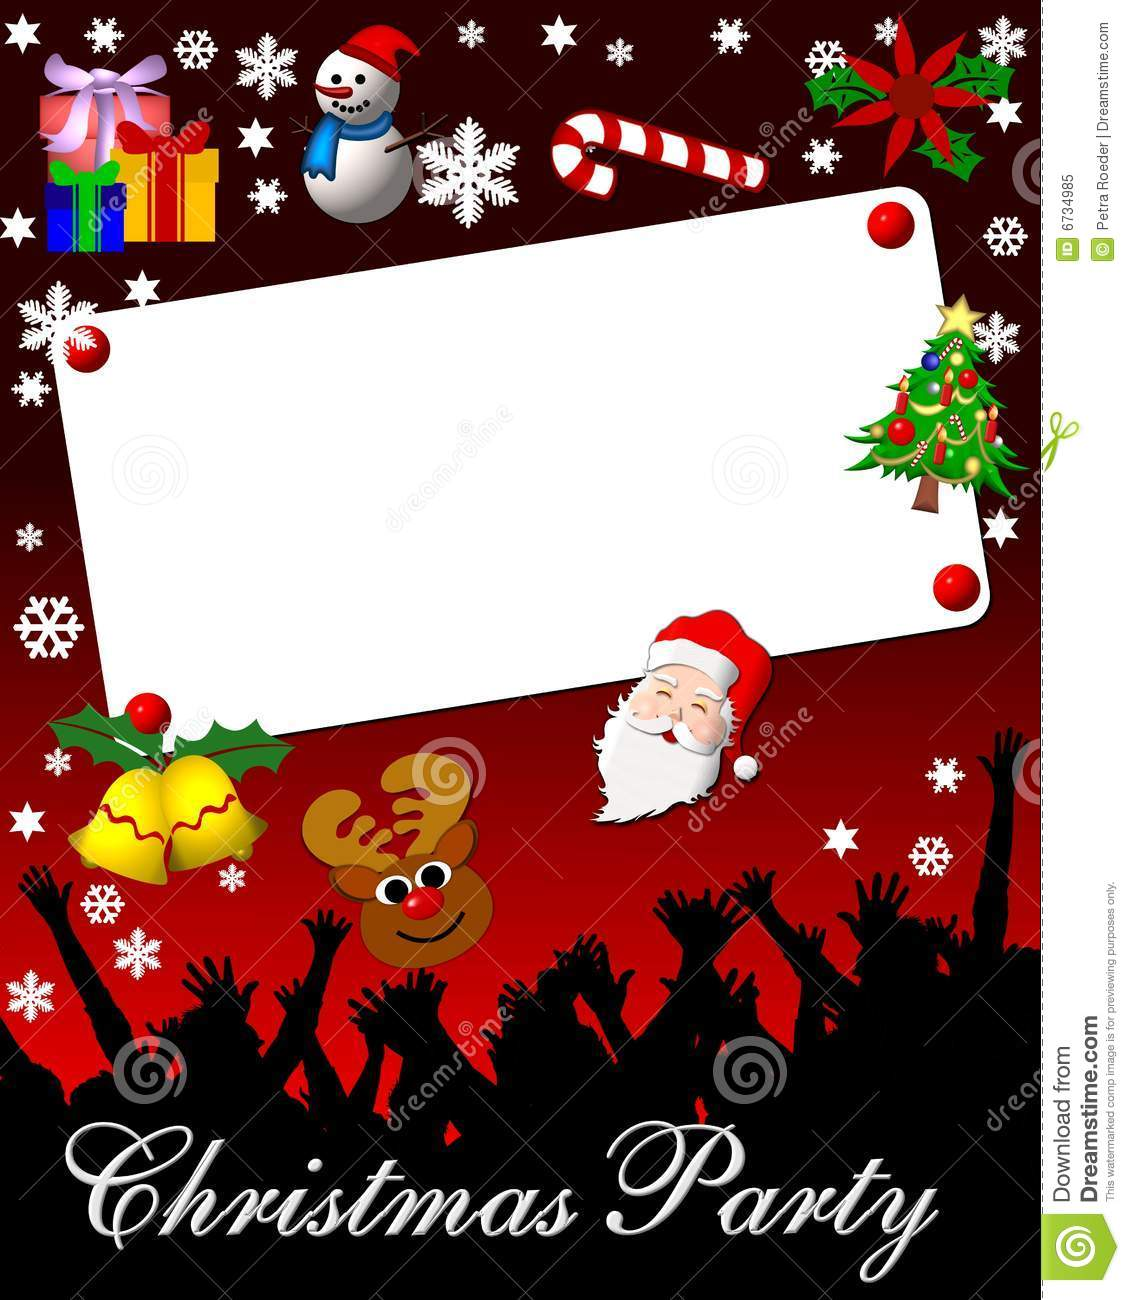 christmas party invitation background images christmas party invitation background